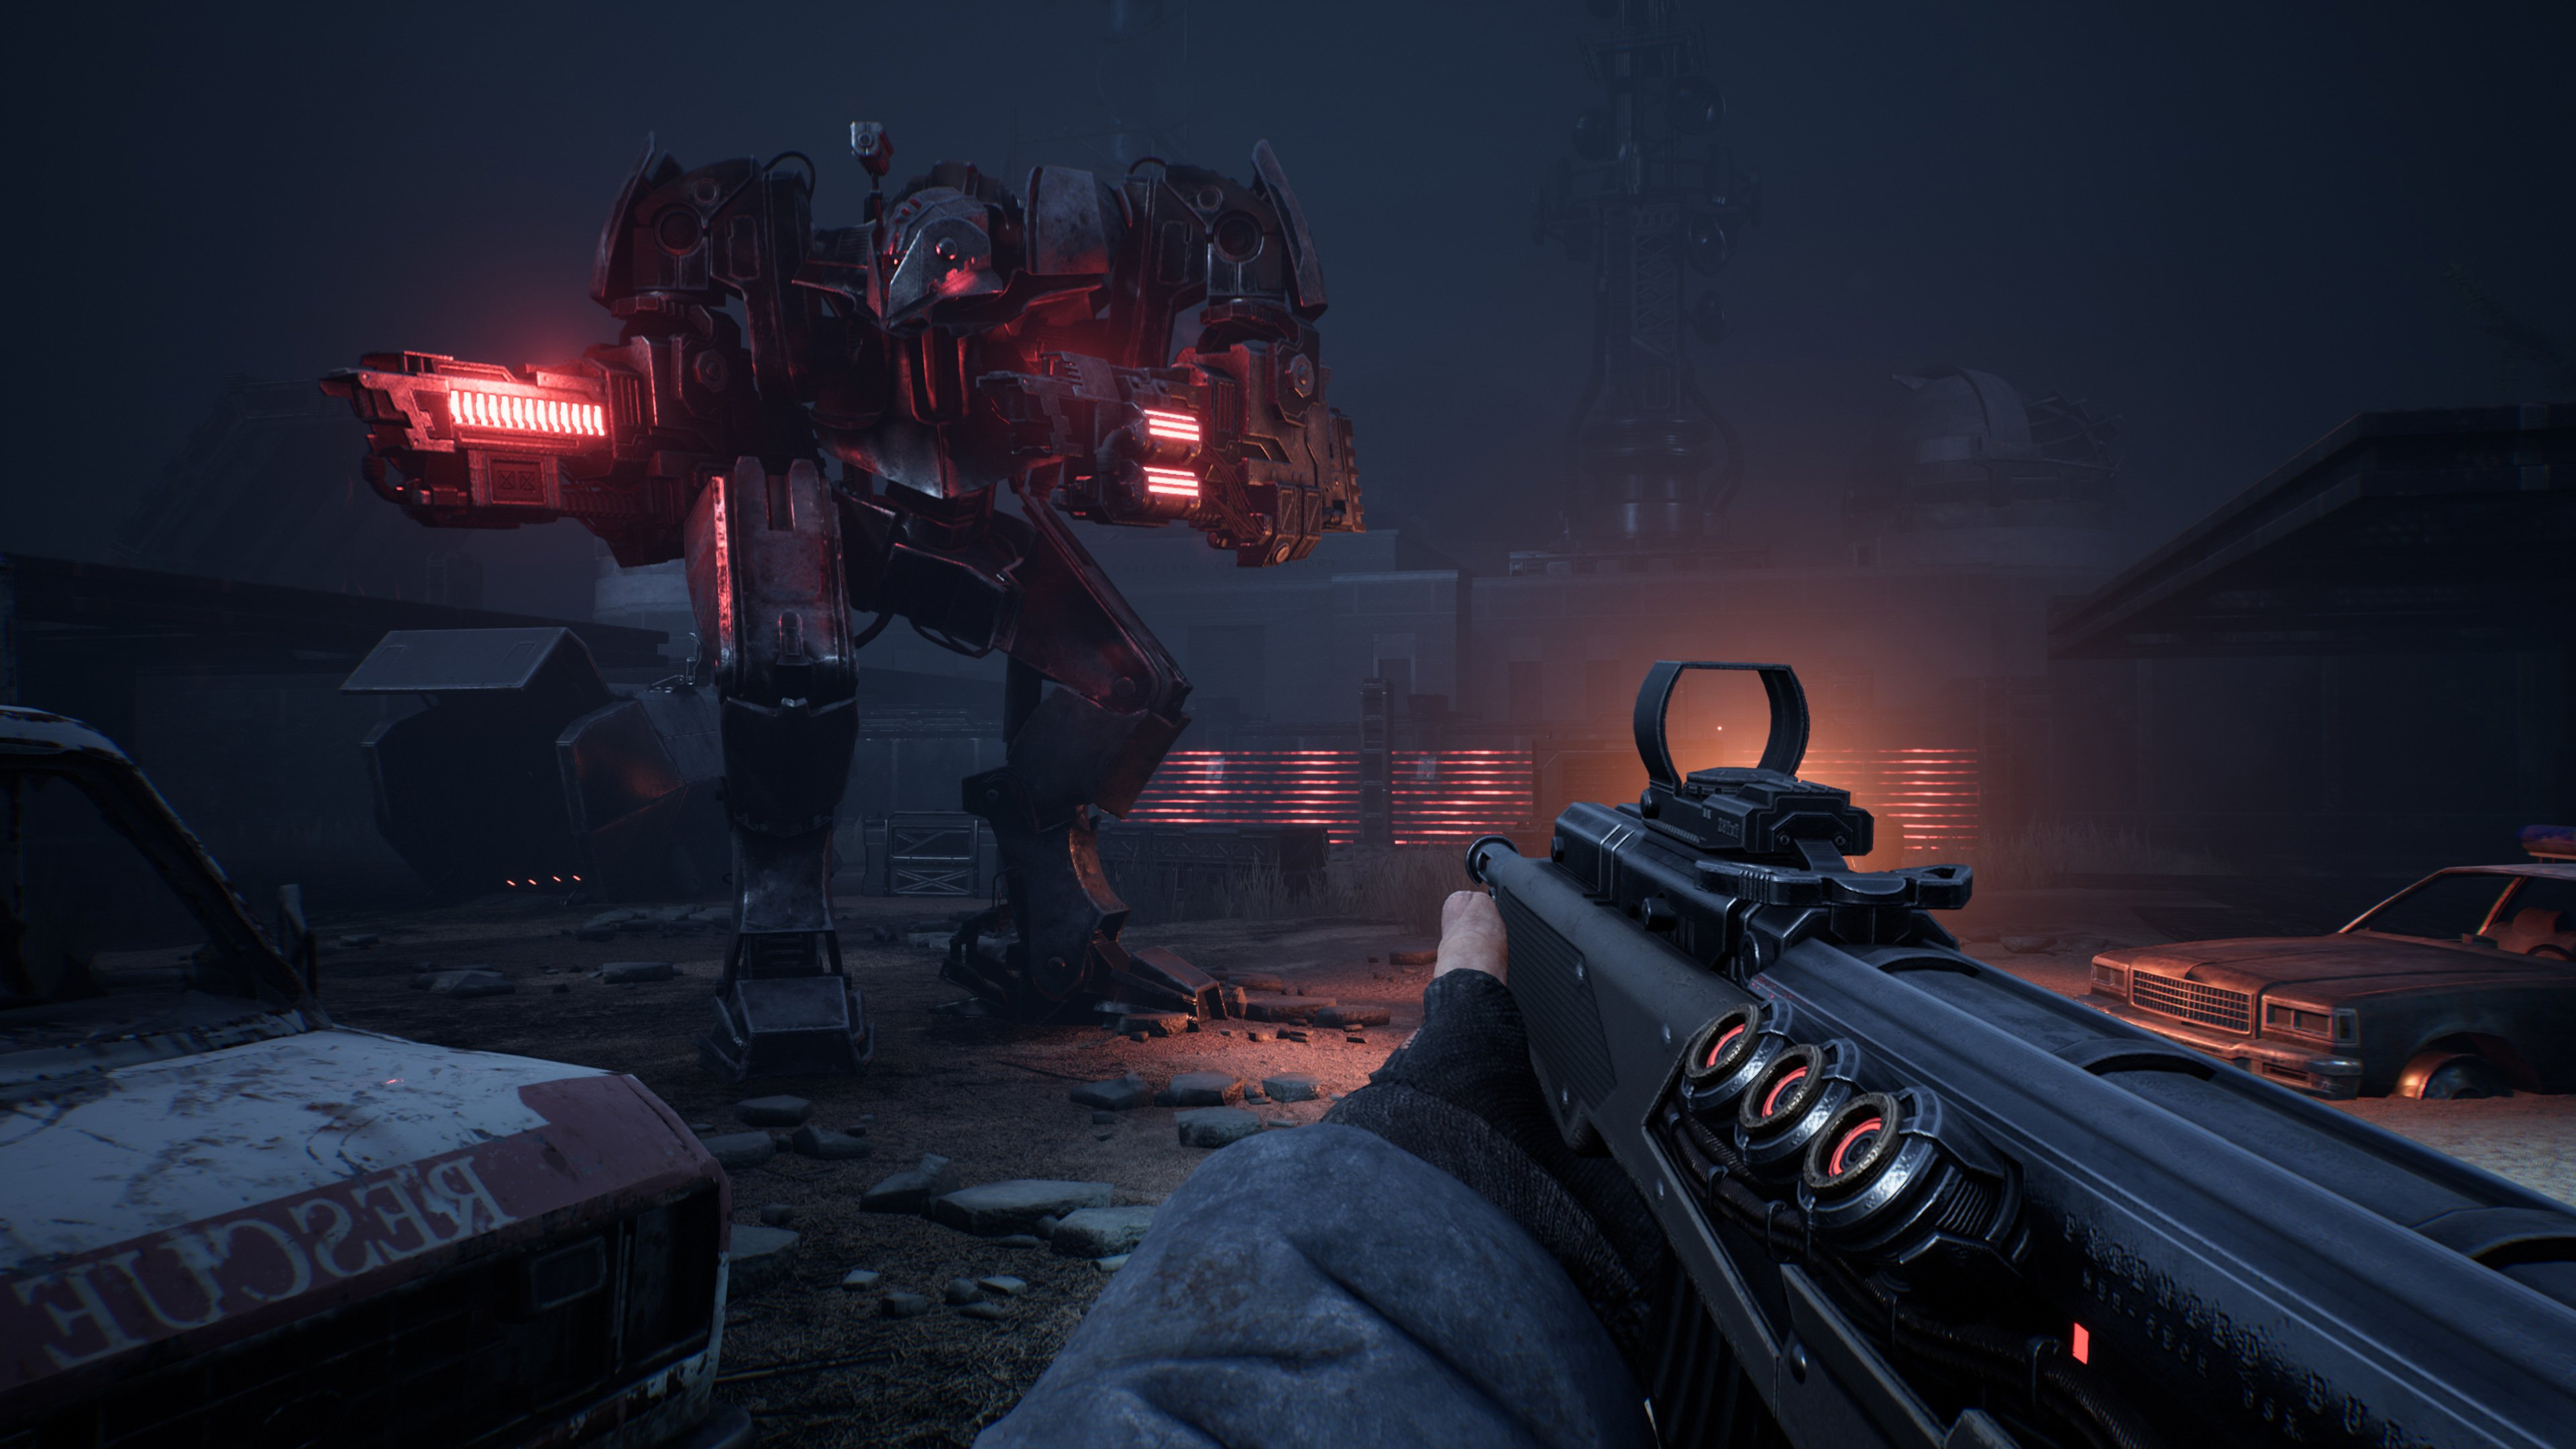 I didn't expect Terminator: Resistance to get a PS5 enhanced edition screenshot